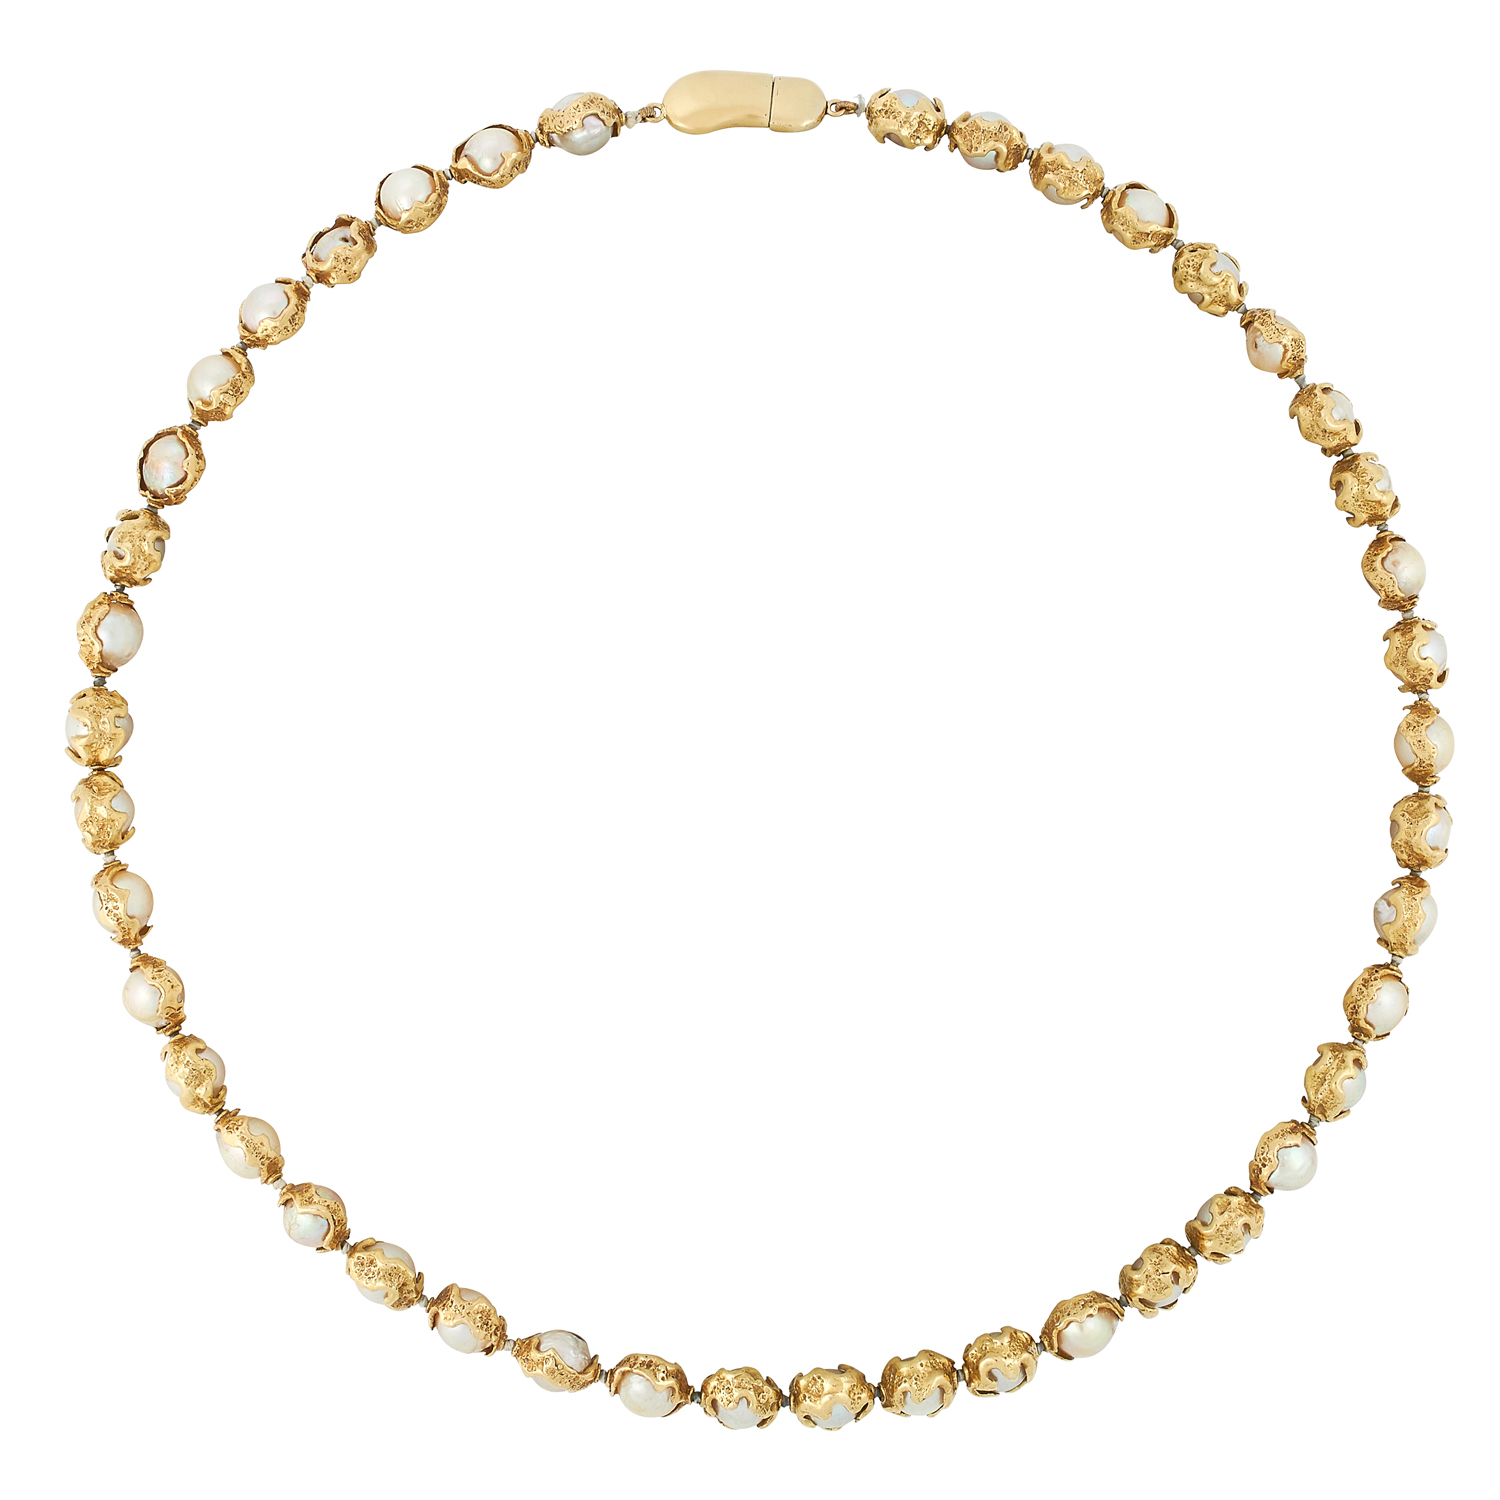 A CULTURED PEARL NECKLACE, CHARLES DE TEMPLE 1978 formed of a single row of pearls of 7.5-8.5mm in